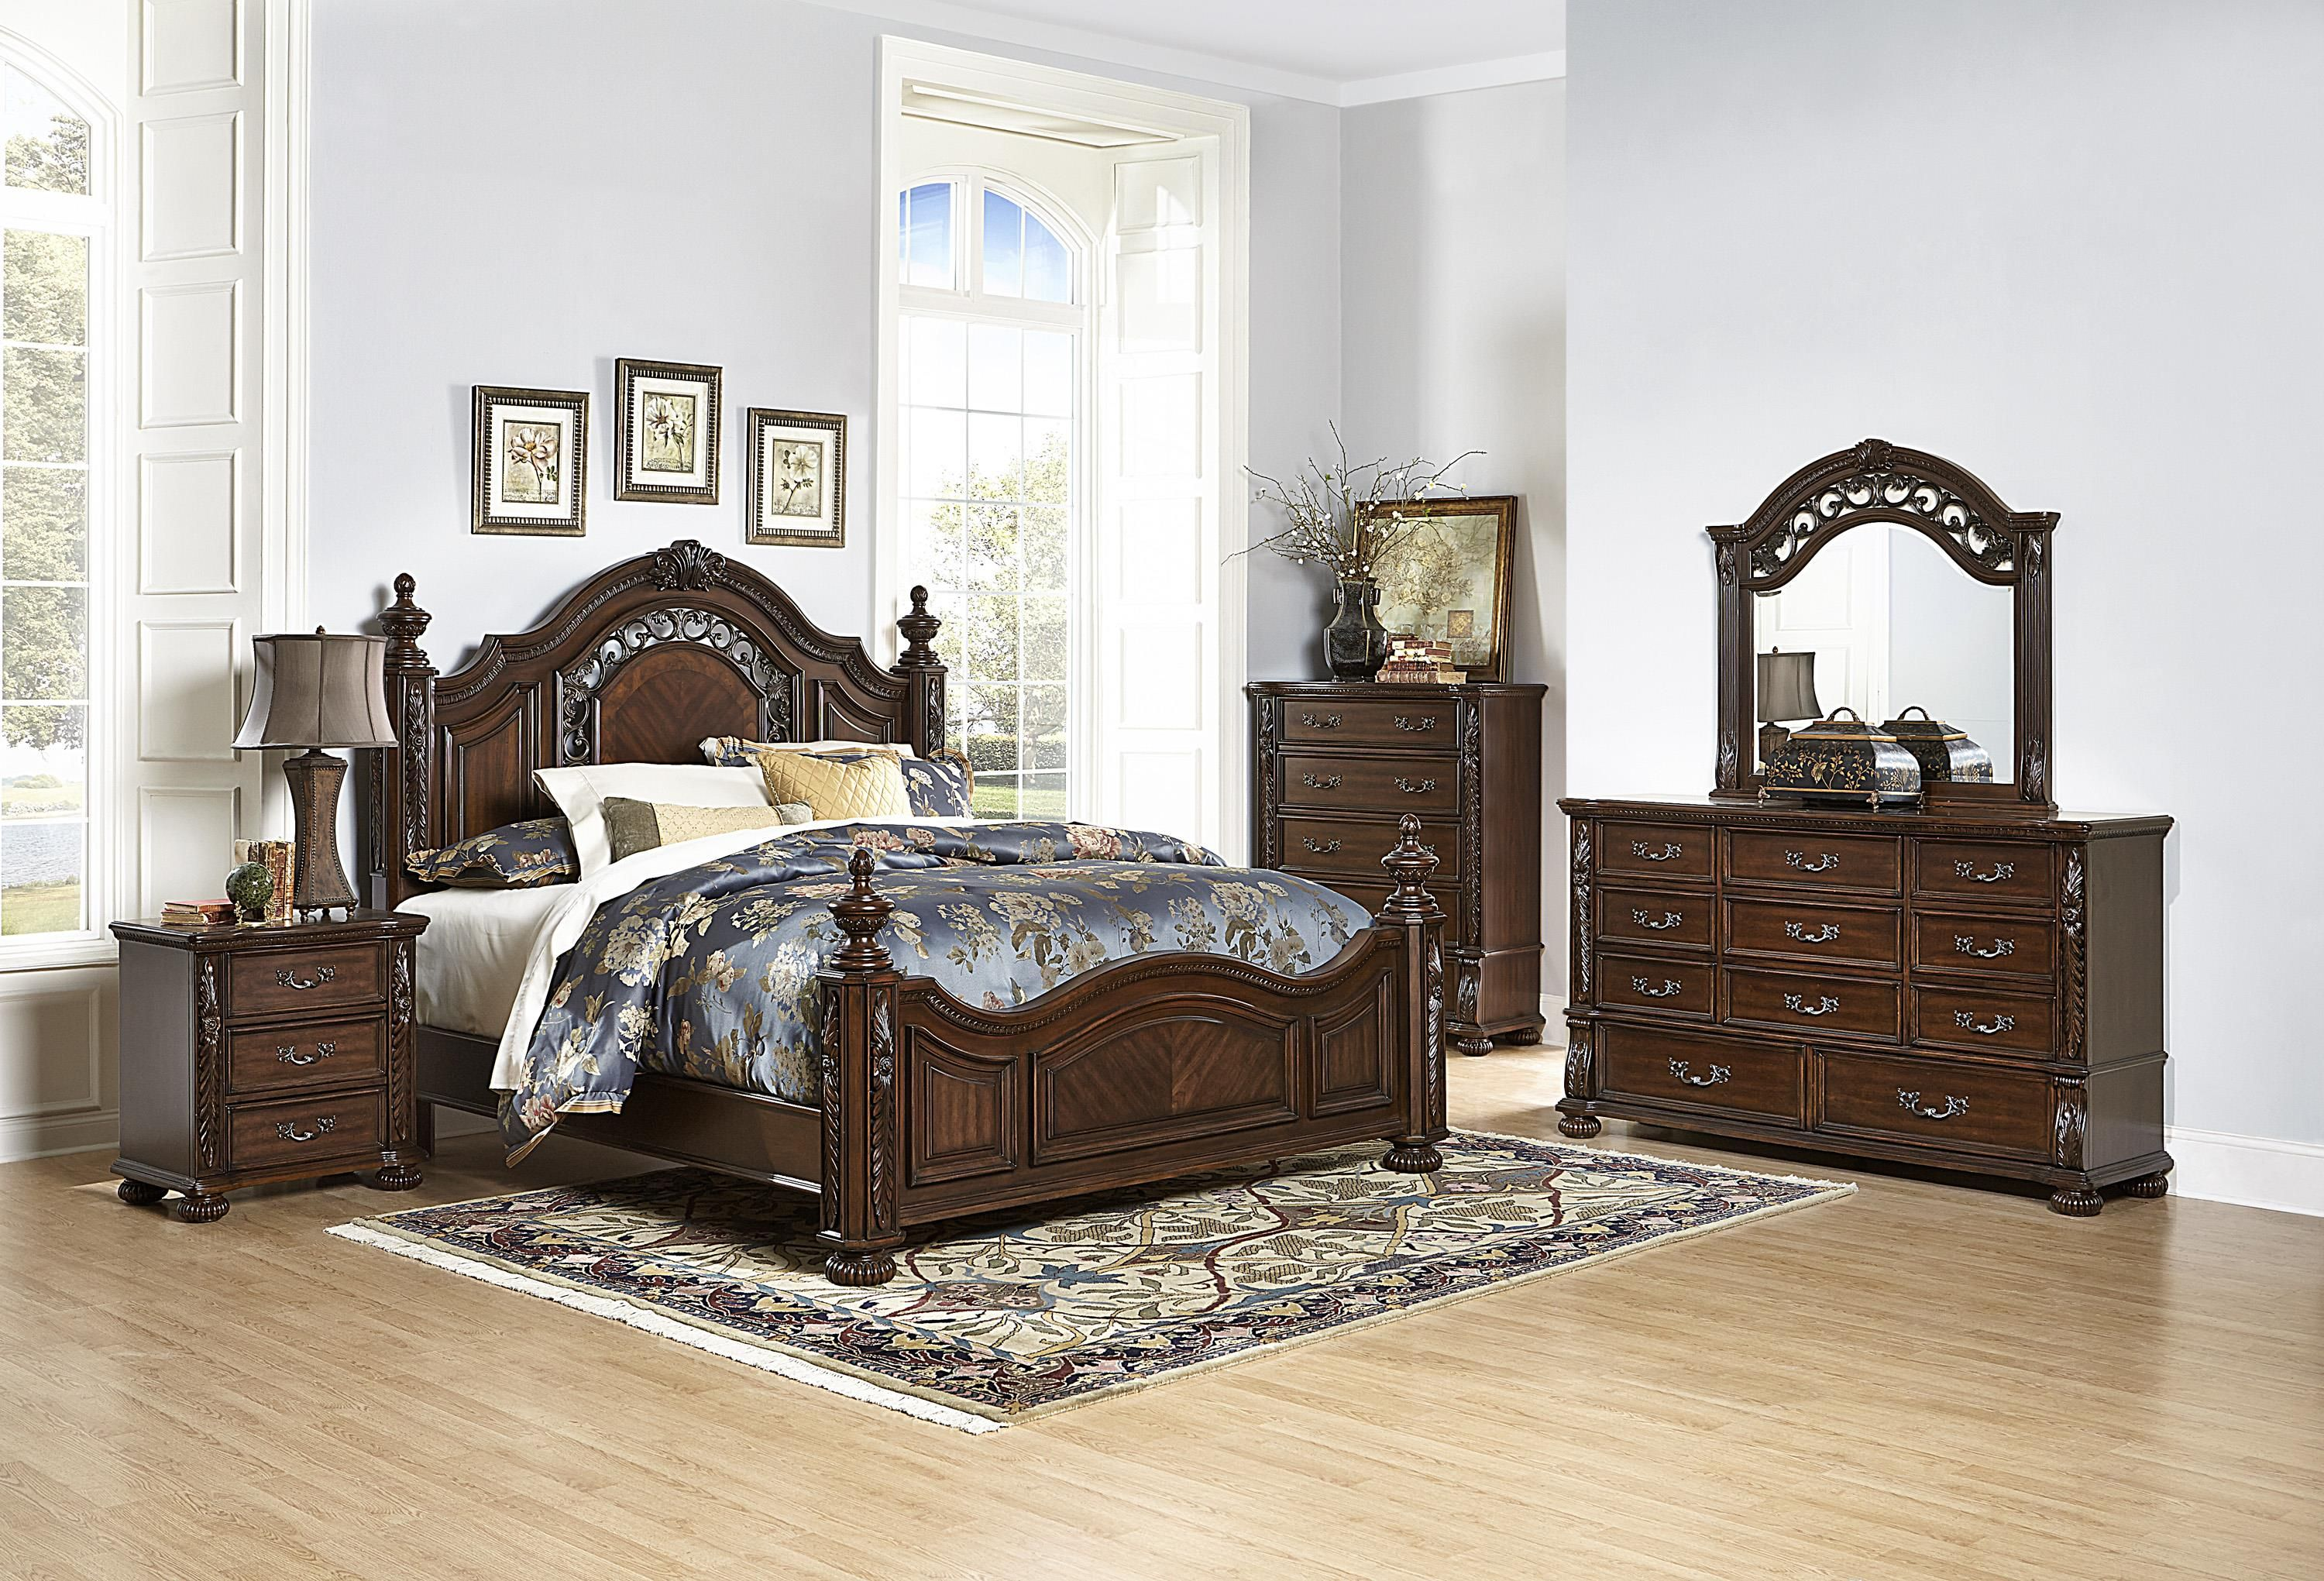 emery king bedroom group by homelegance | furniture | pinterest